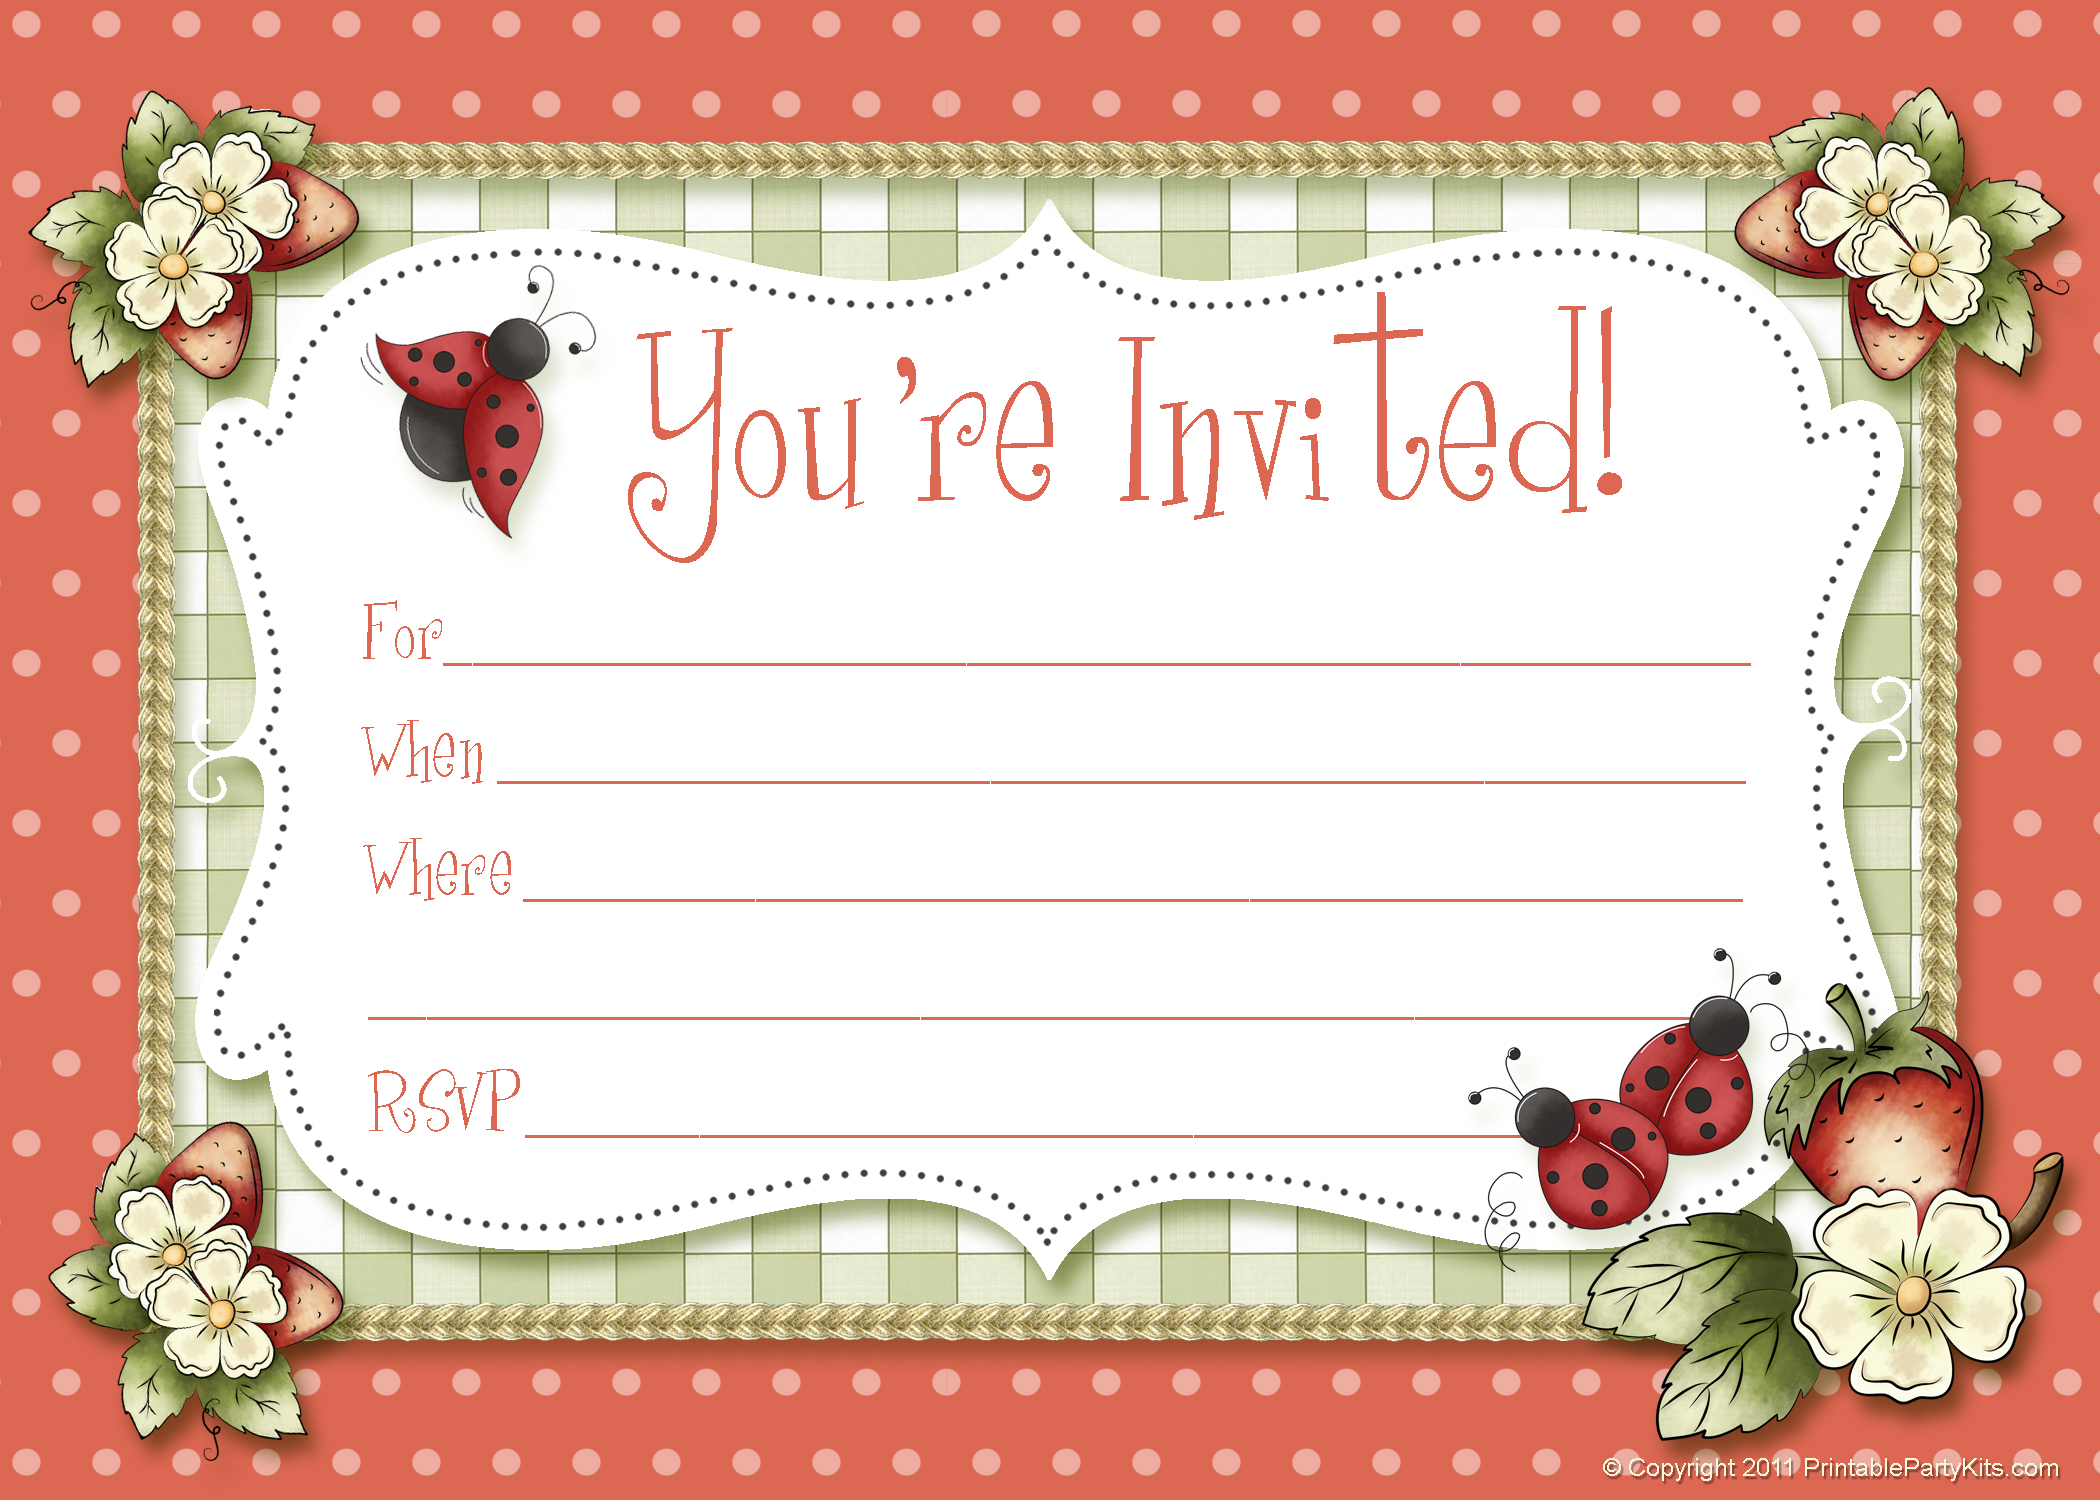 online birthday invitation maker with photo ; online-party-invitation-maker-is-the-newest-and-best-concepts-of-captivating-Baby-Shower-invitations-12